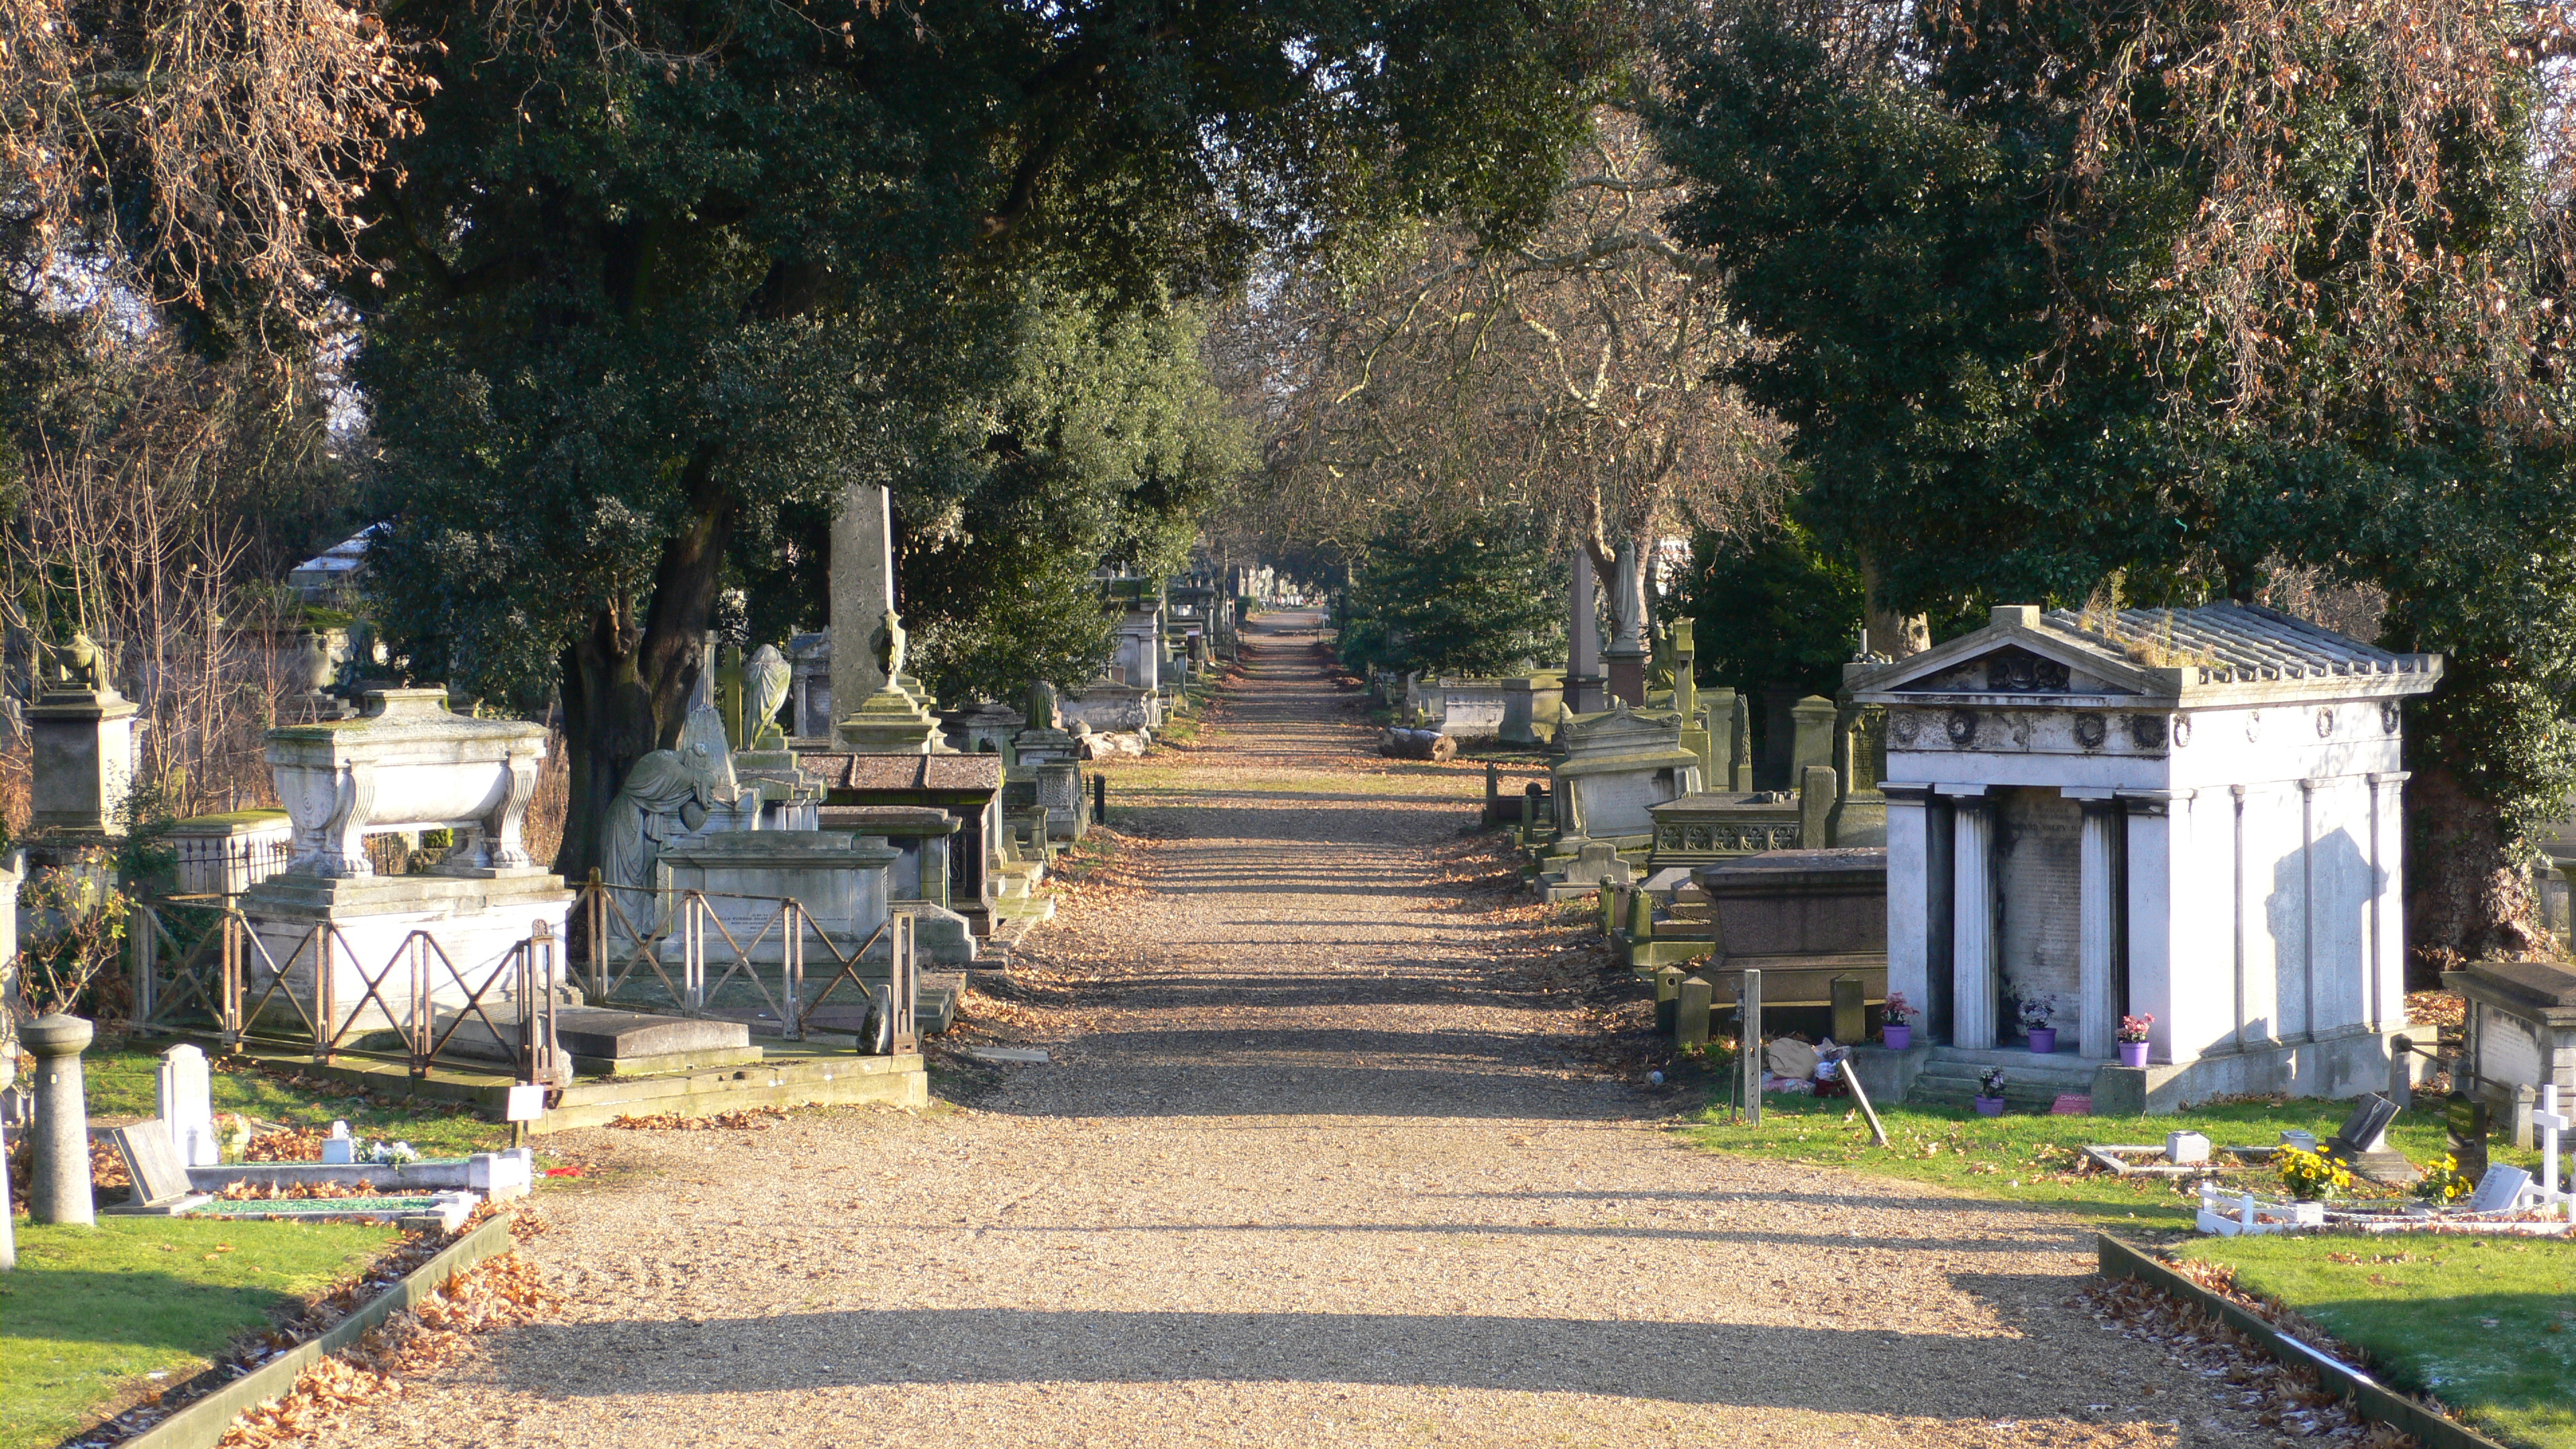 Kensal_Green_Cemetery_view_December_2005[1]